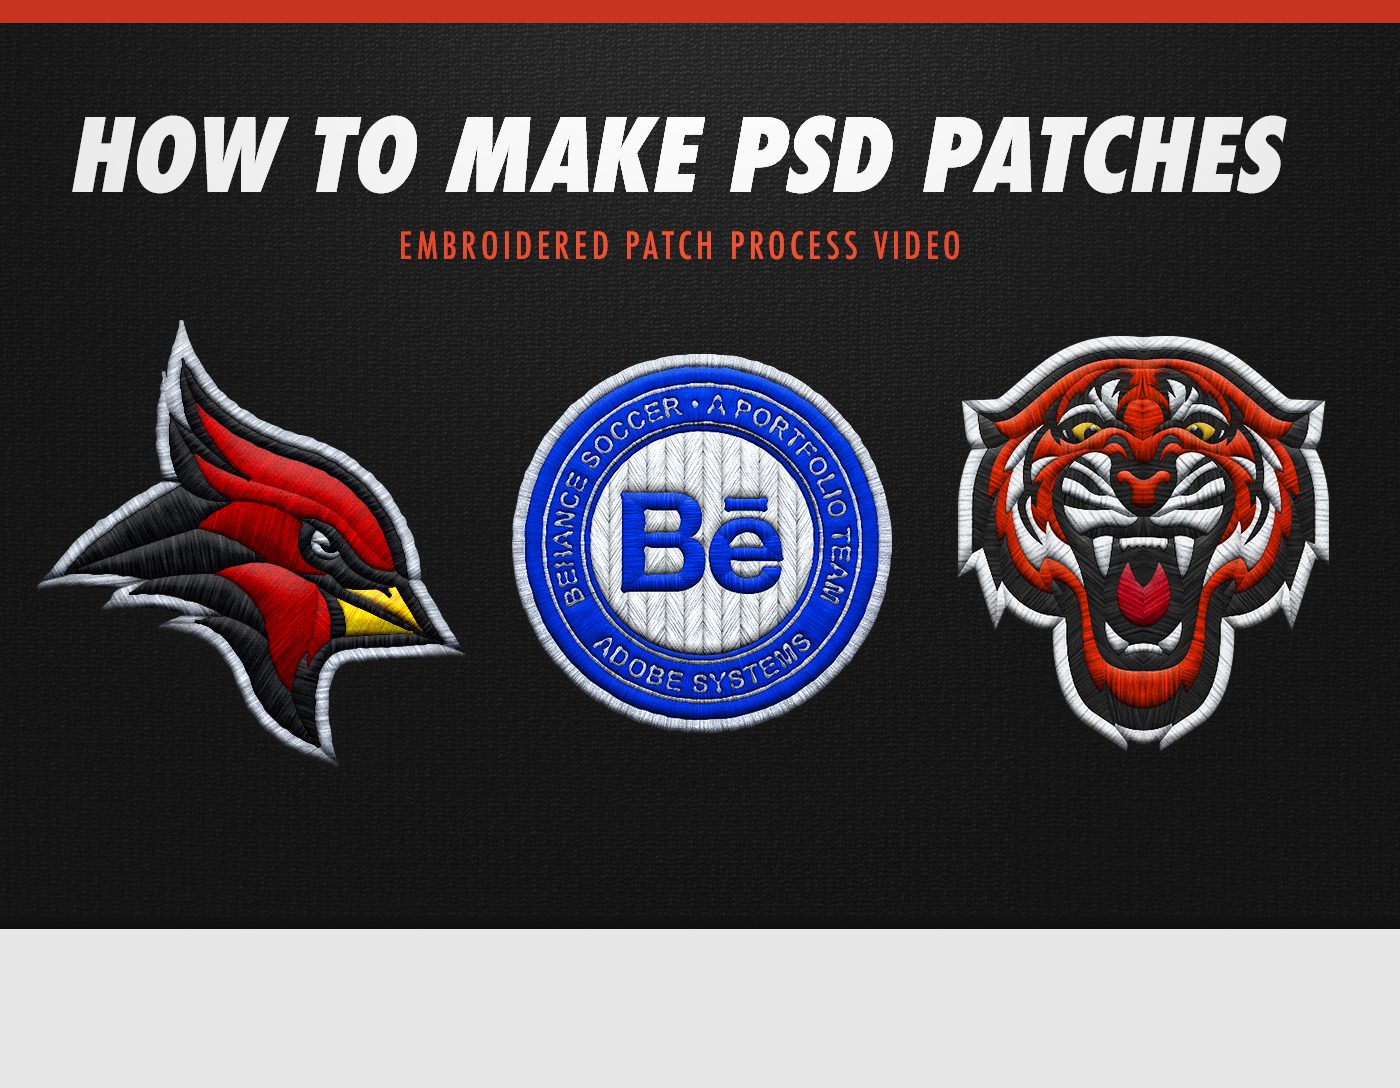 I want to give out more patches. How To Make Psd Embroidered Patches Free Psd Assets On Behance